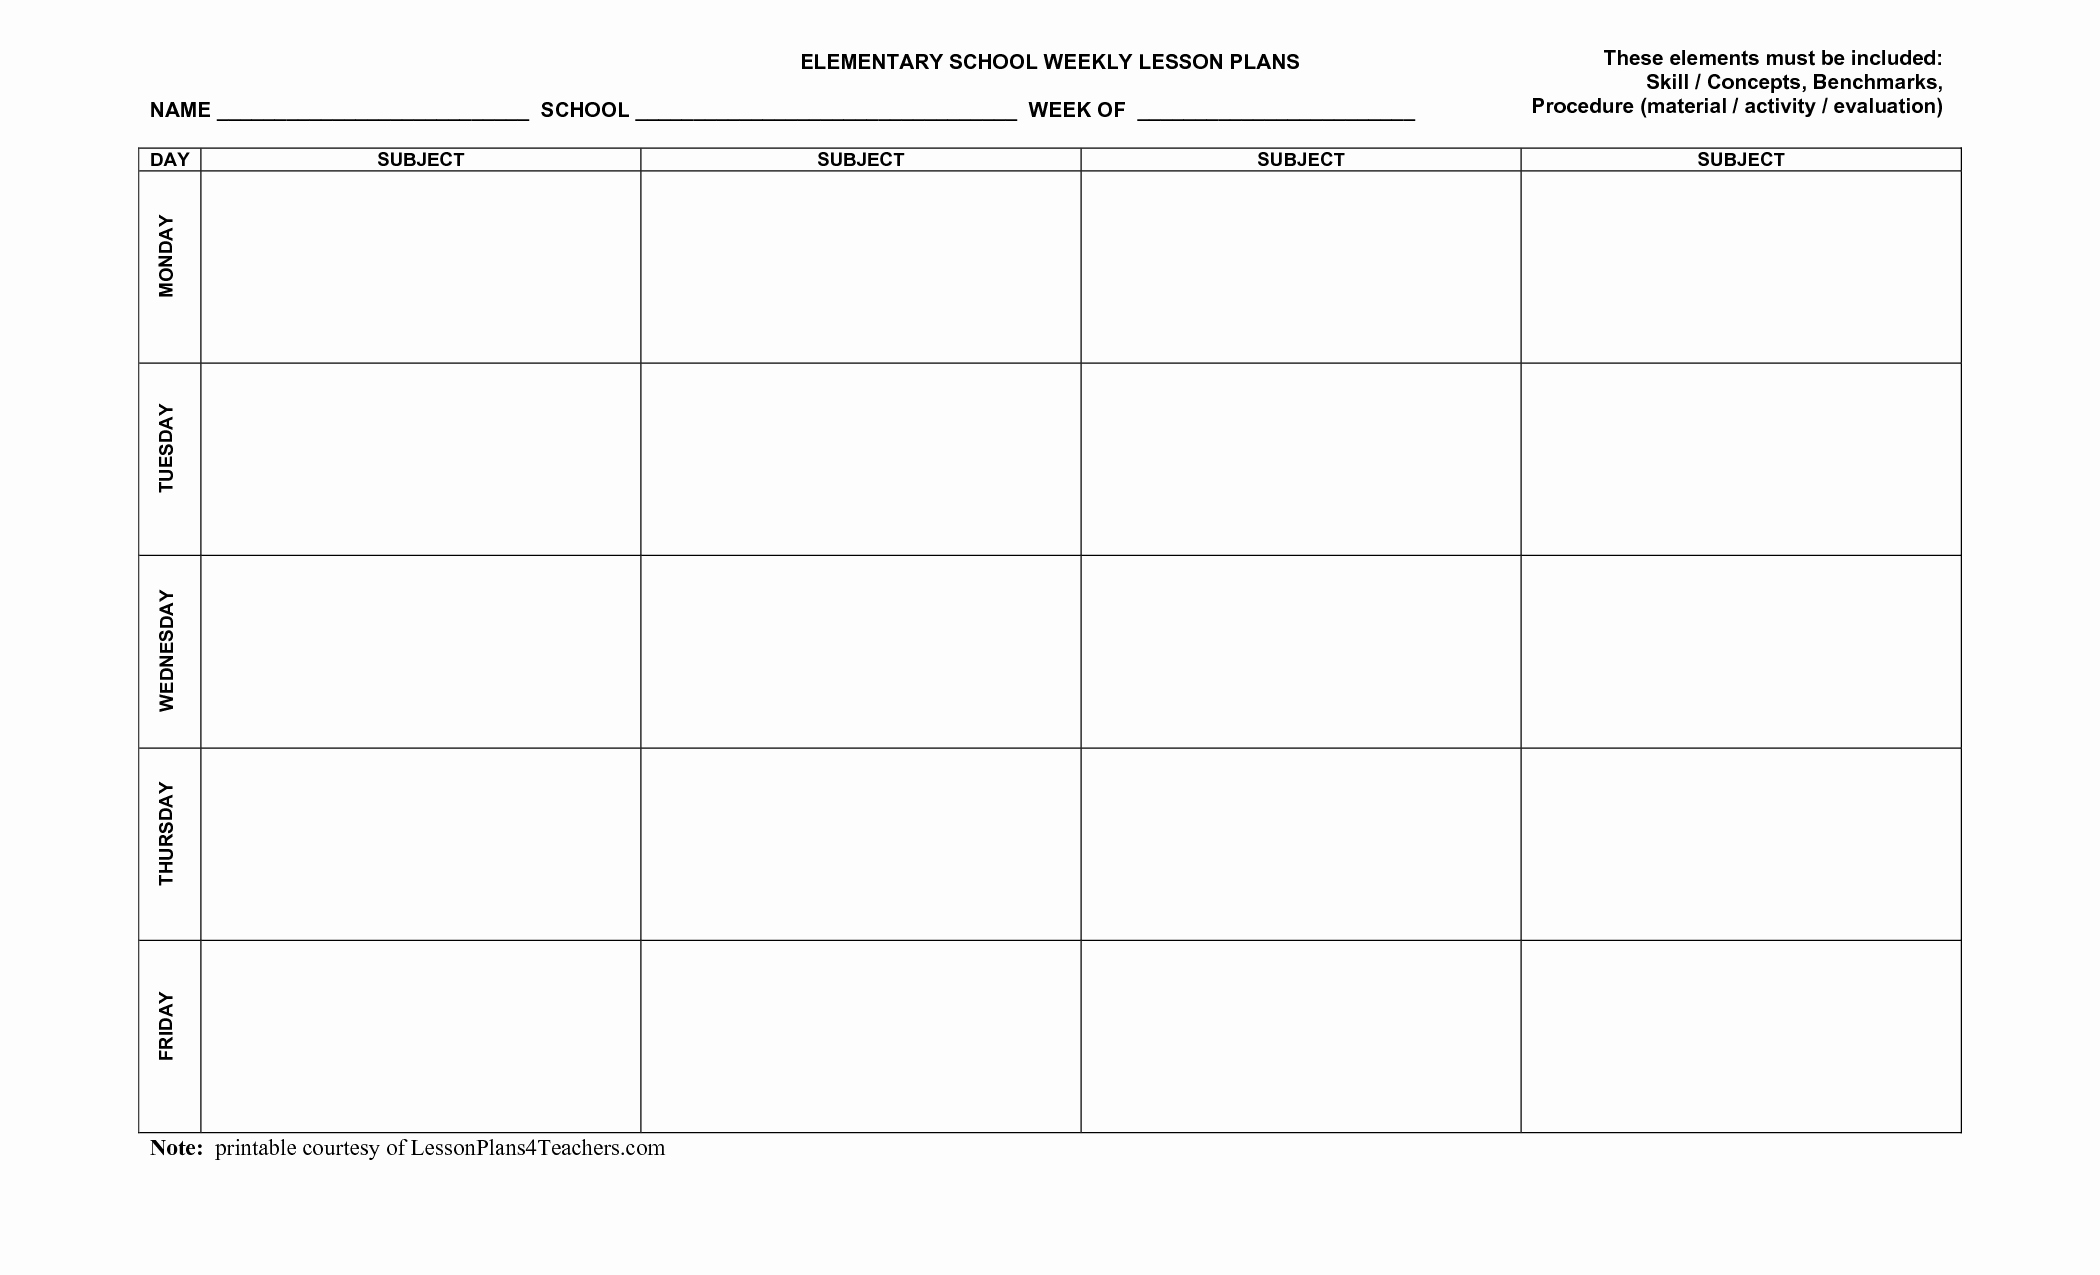 Free Lesson Plan Template Elementary Inspirational Unique Weekly Lesson Plan Templates Exceltemplate Xls